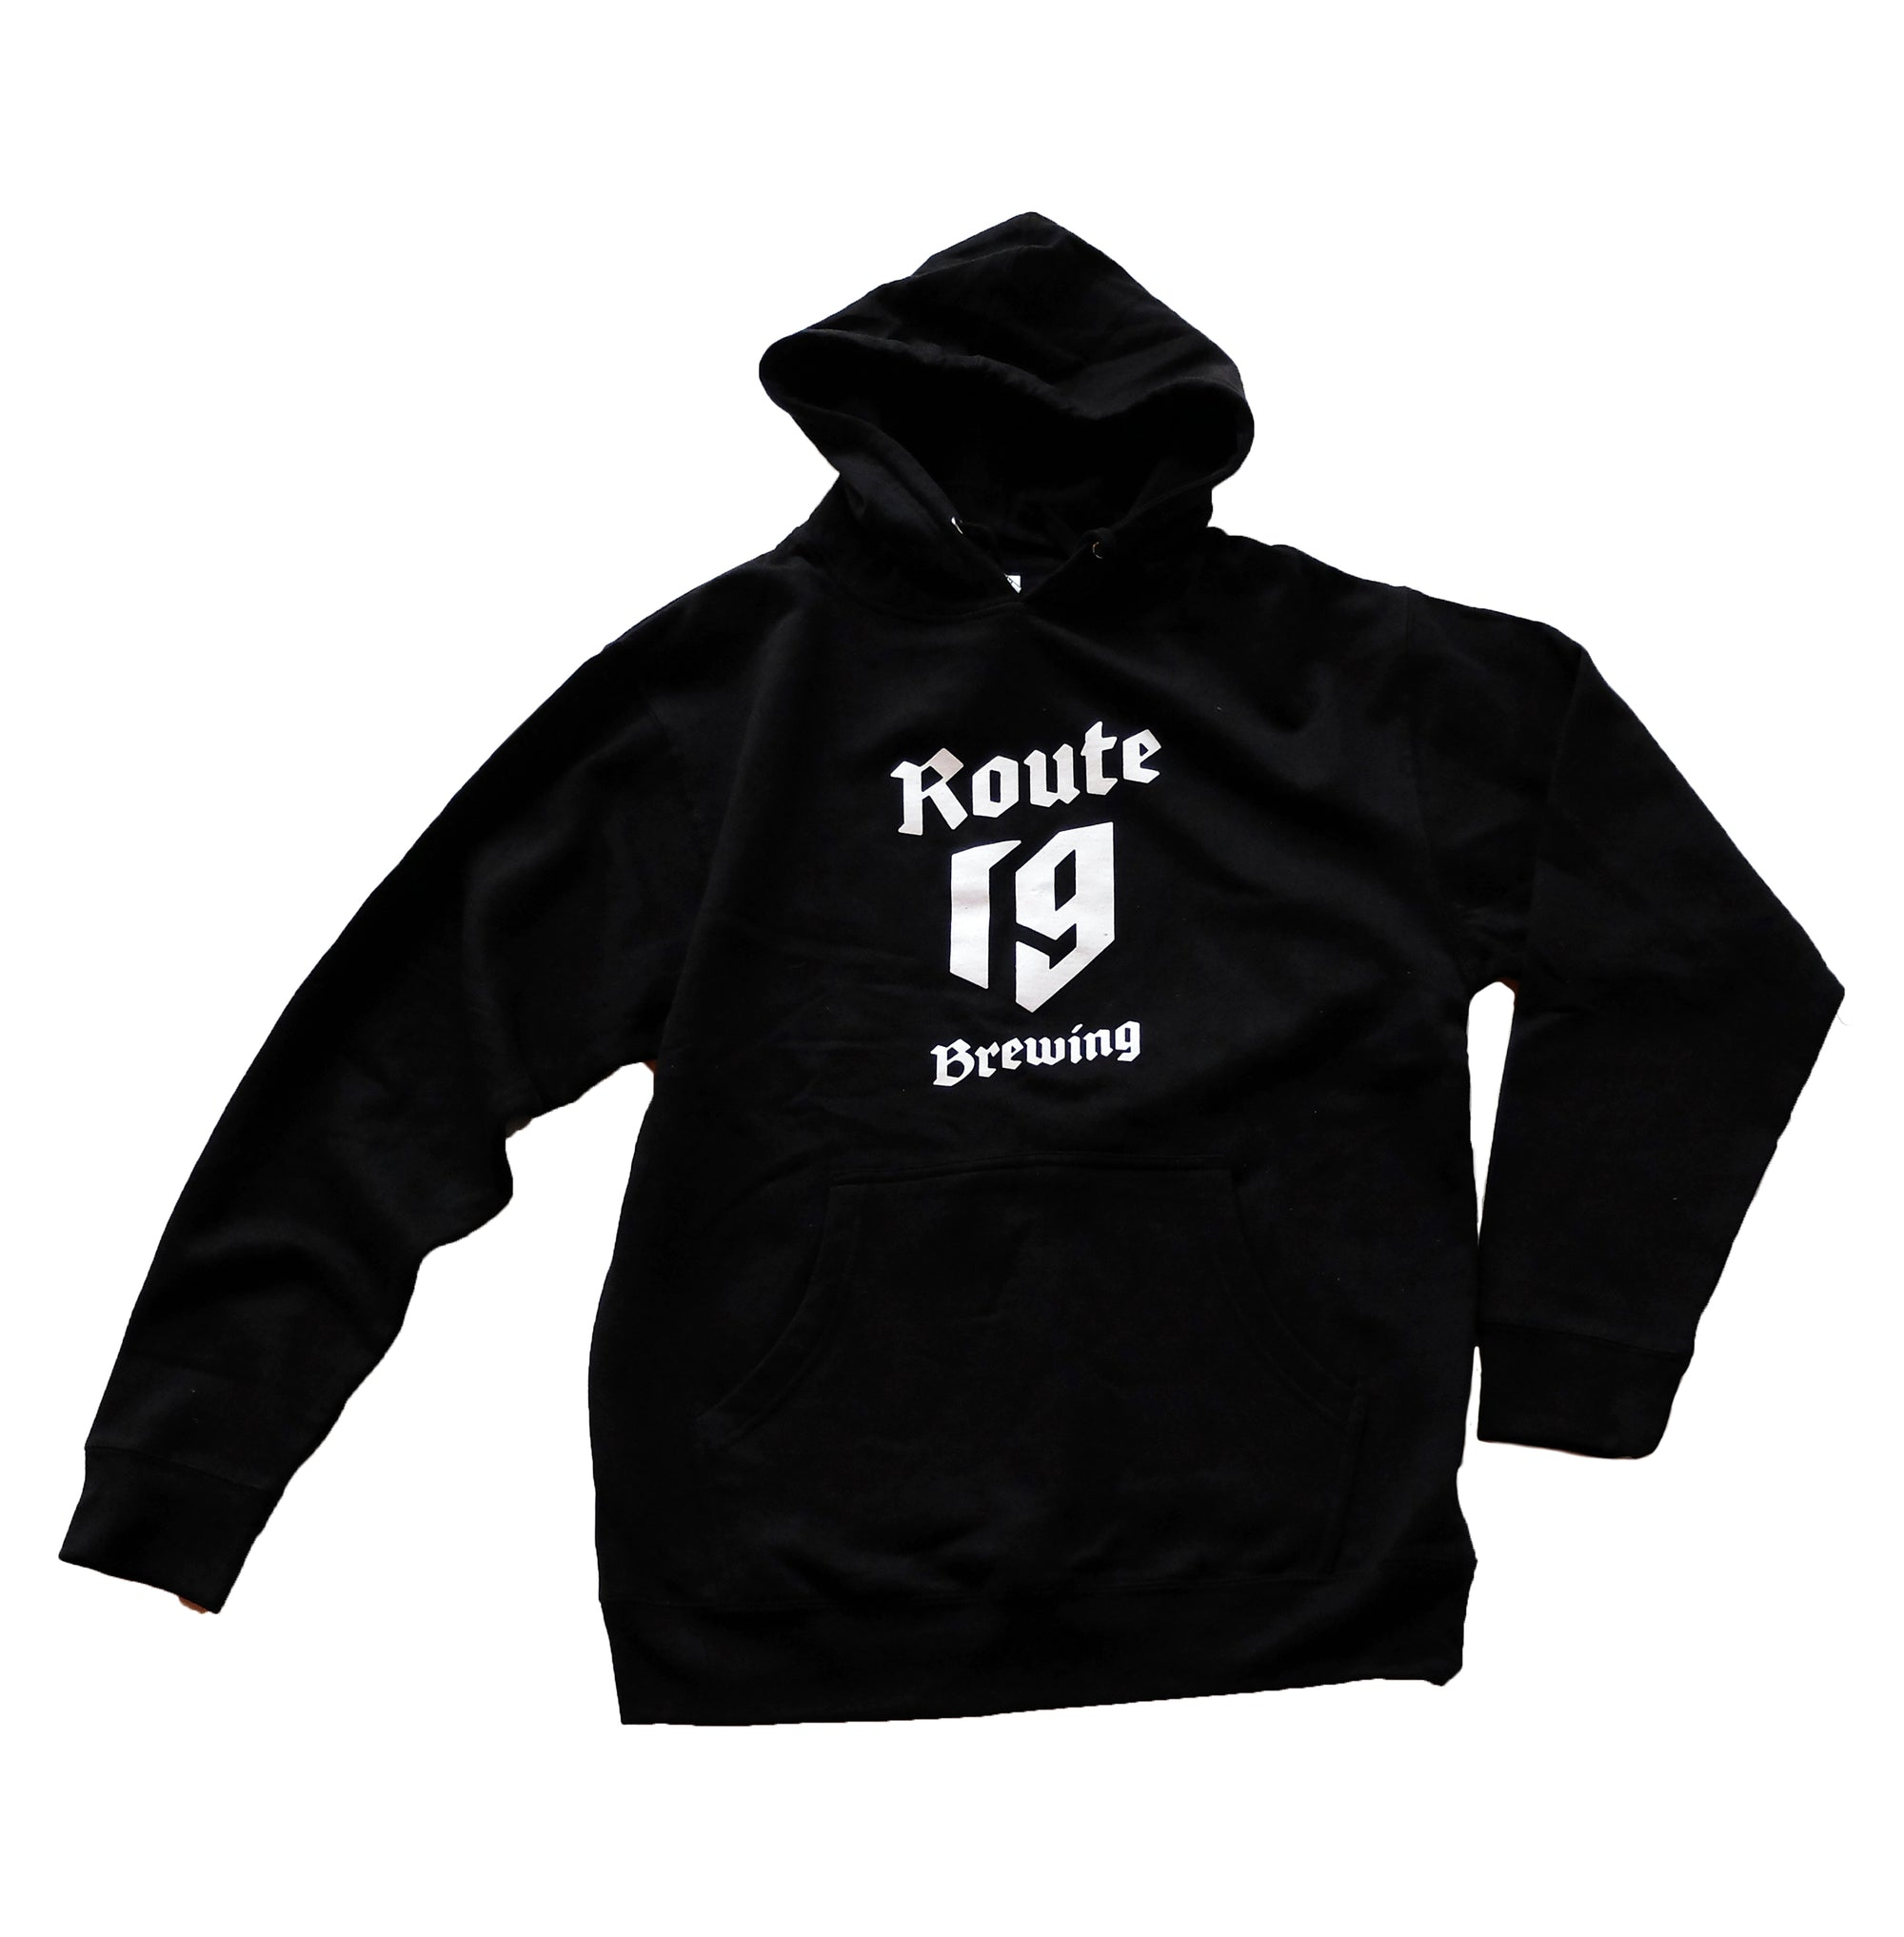 Classic Hoodie - Unisex 'Route 19 Brewing'